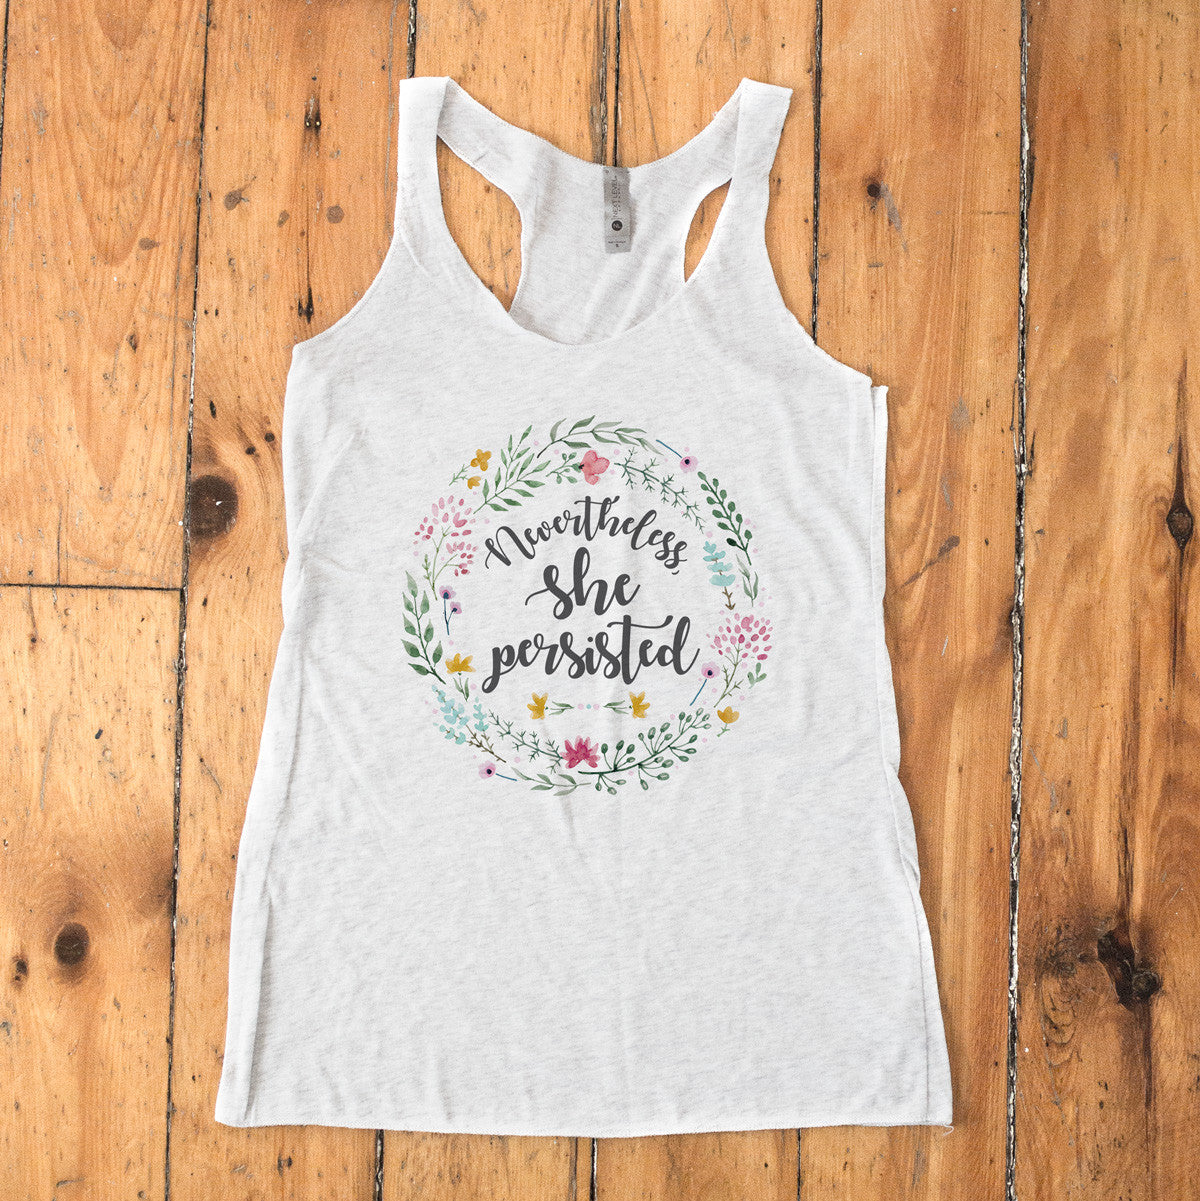 Nevertheless She Persisted Ladies' Tri-Blend Racerback Tank